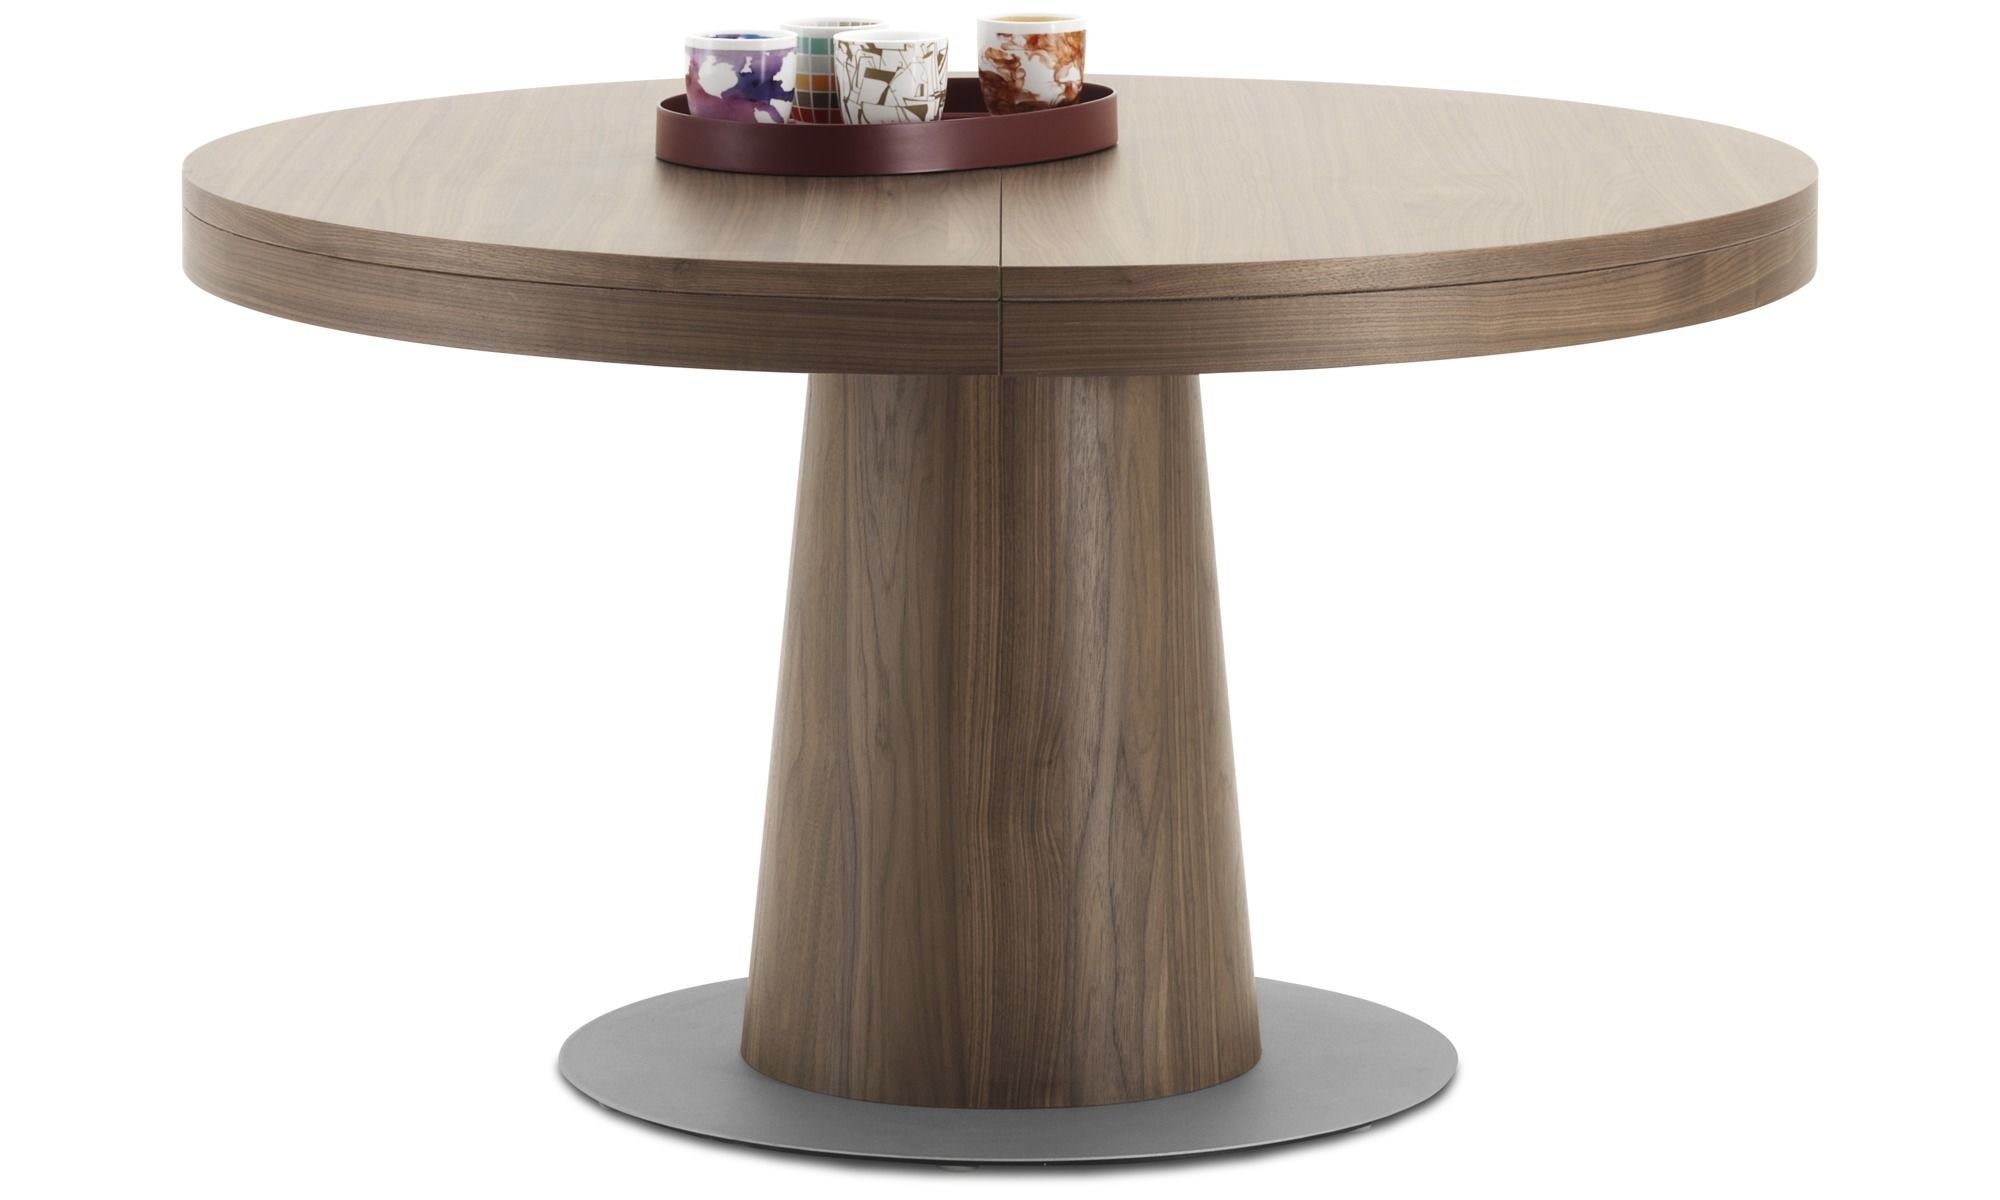 Dining Tables Granada Table With Supplementary Tabletop Round Brown Walnut Extendable Dining Table Modern Round Extendable Dining Table Dining Table